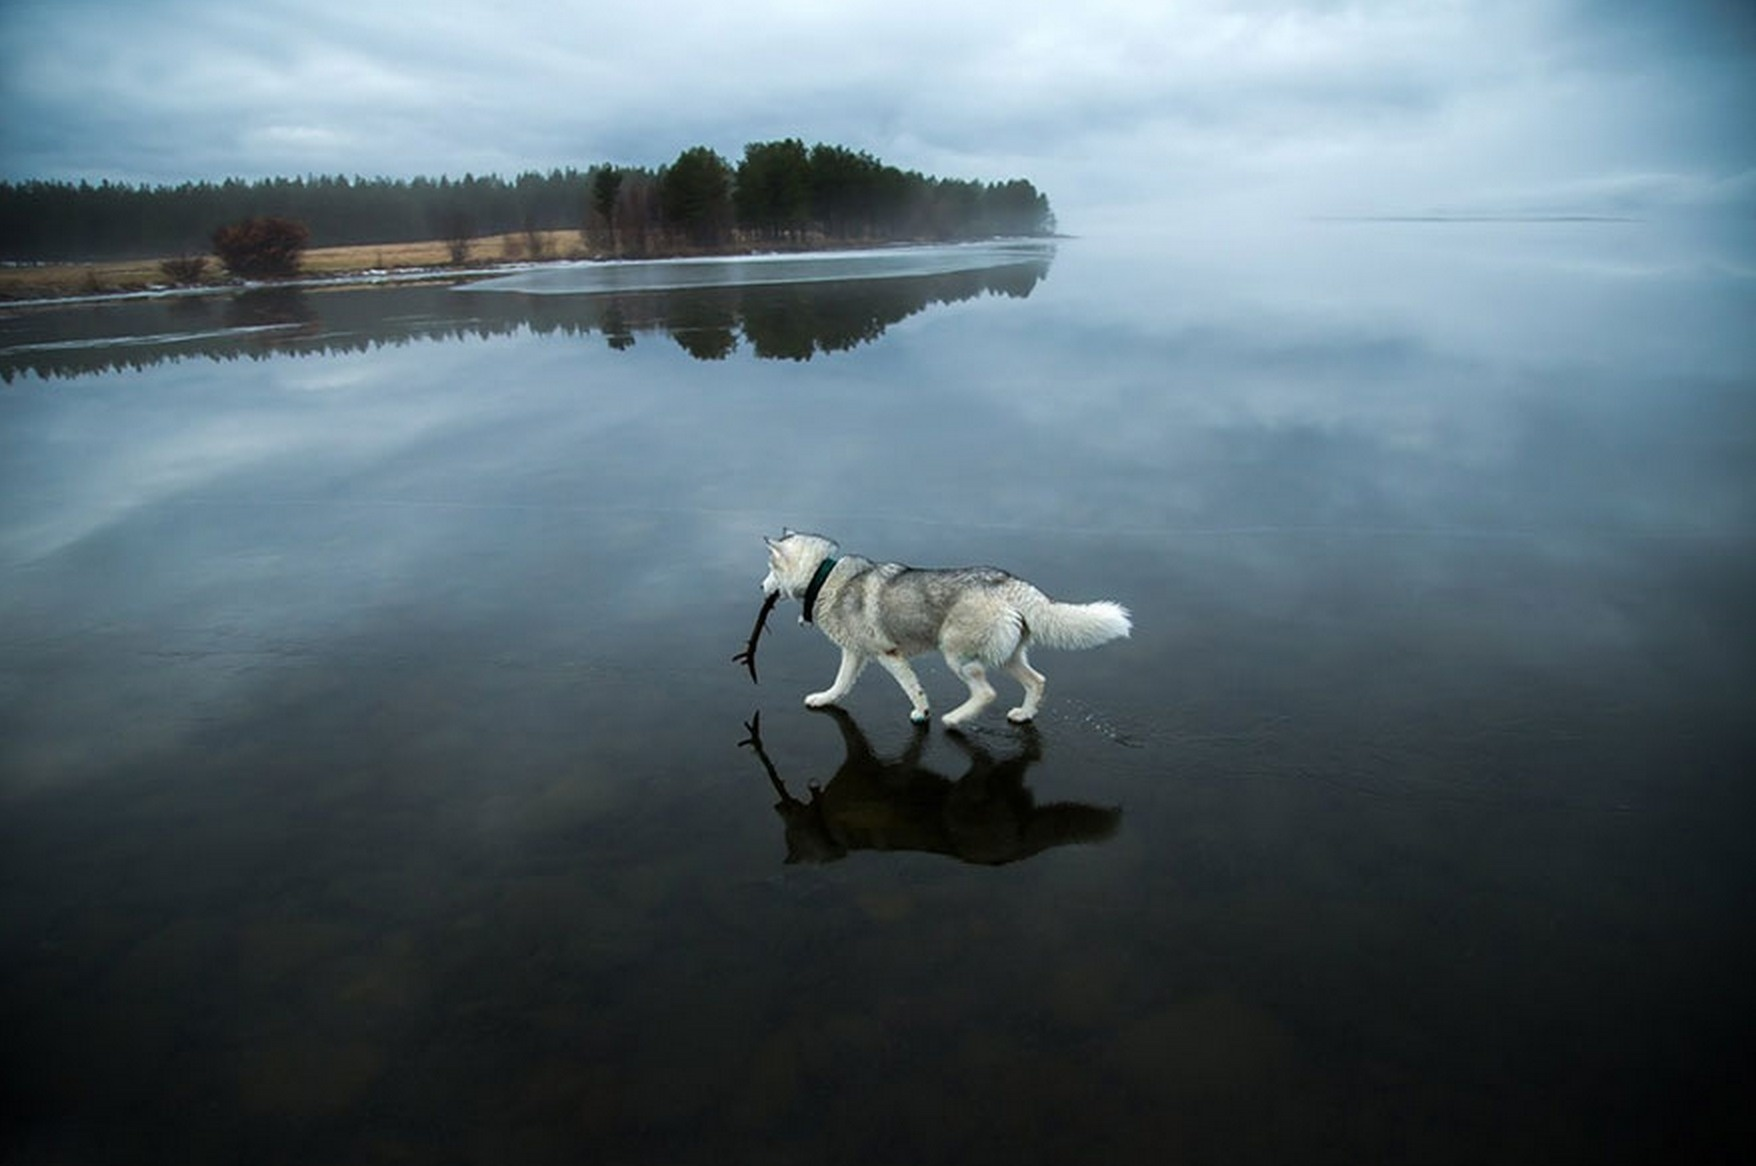 a_husky_walks_on_water_in_northern_russia_by_ahmedmofree1996-d8scdti.jpg